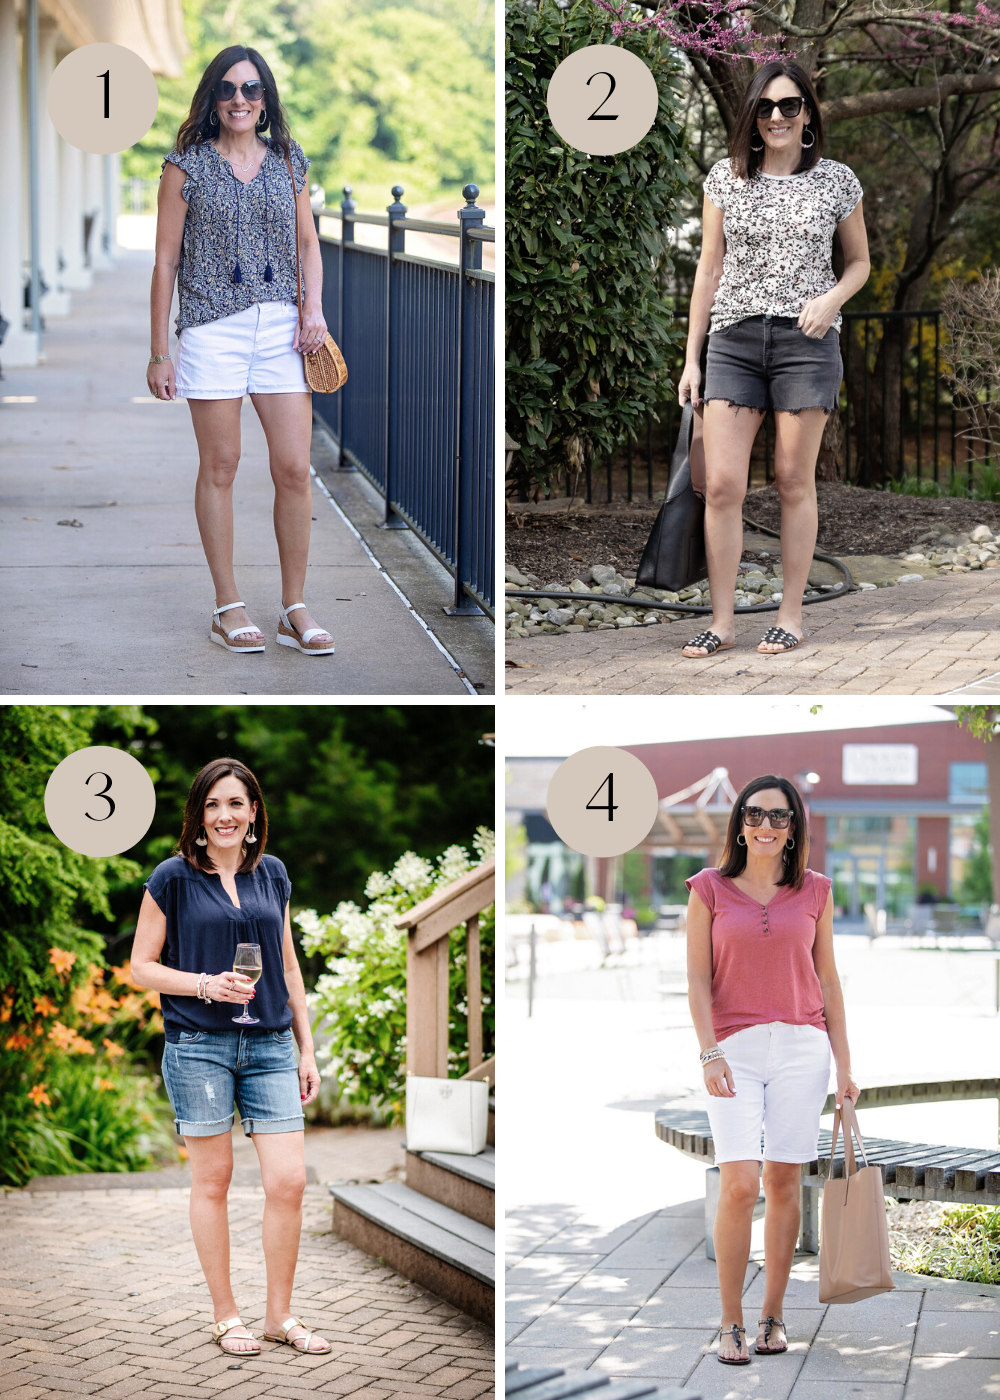 Tips for Wearing Shorts Over 40: Know your ideal inseam length.